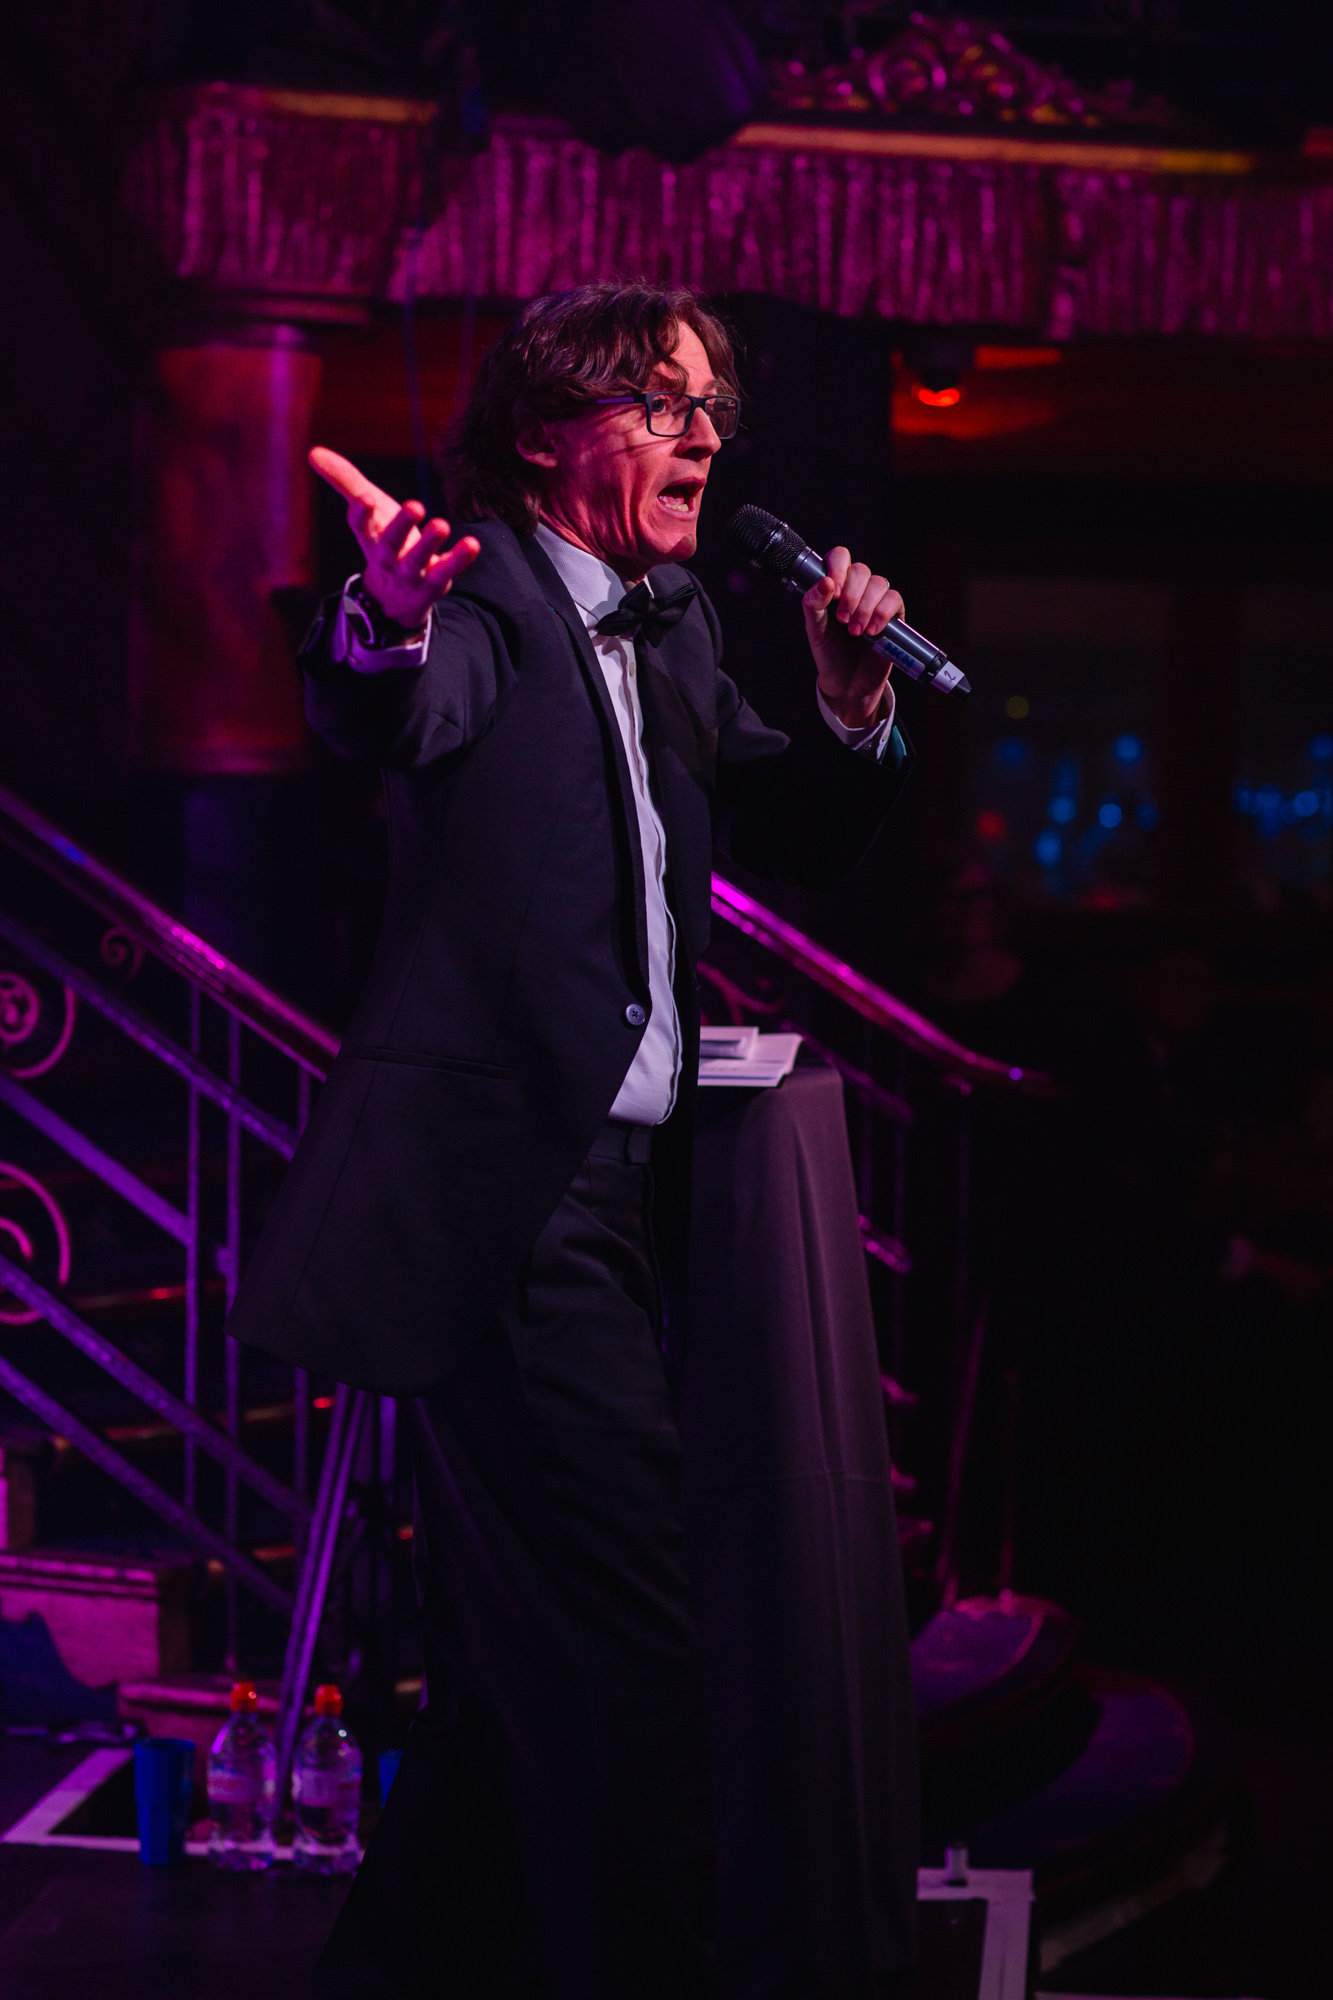 Ed byrne event comedy photo